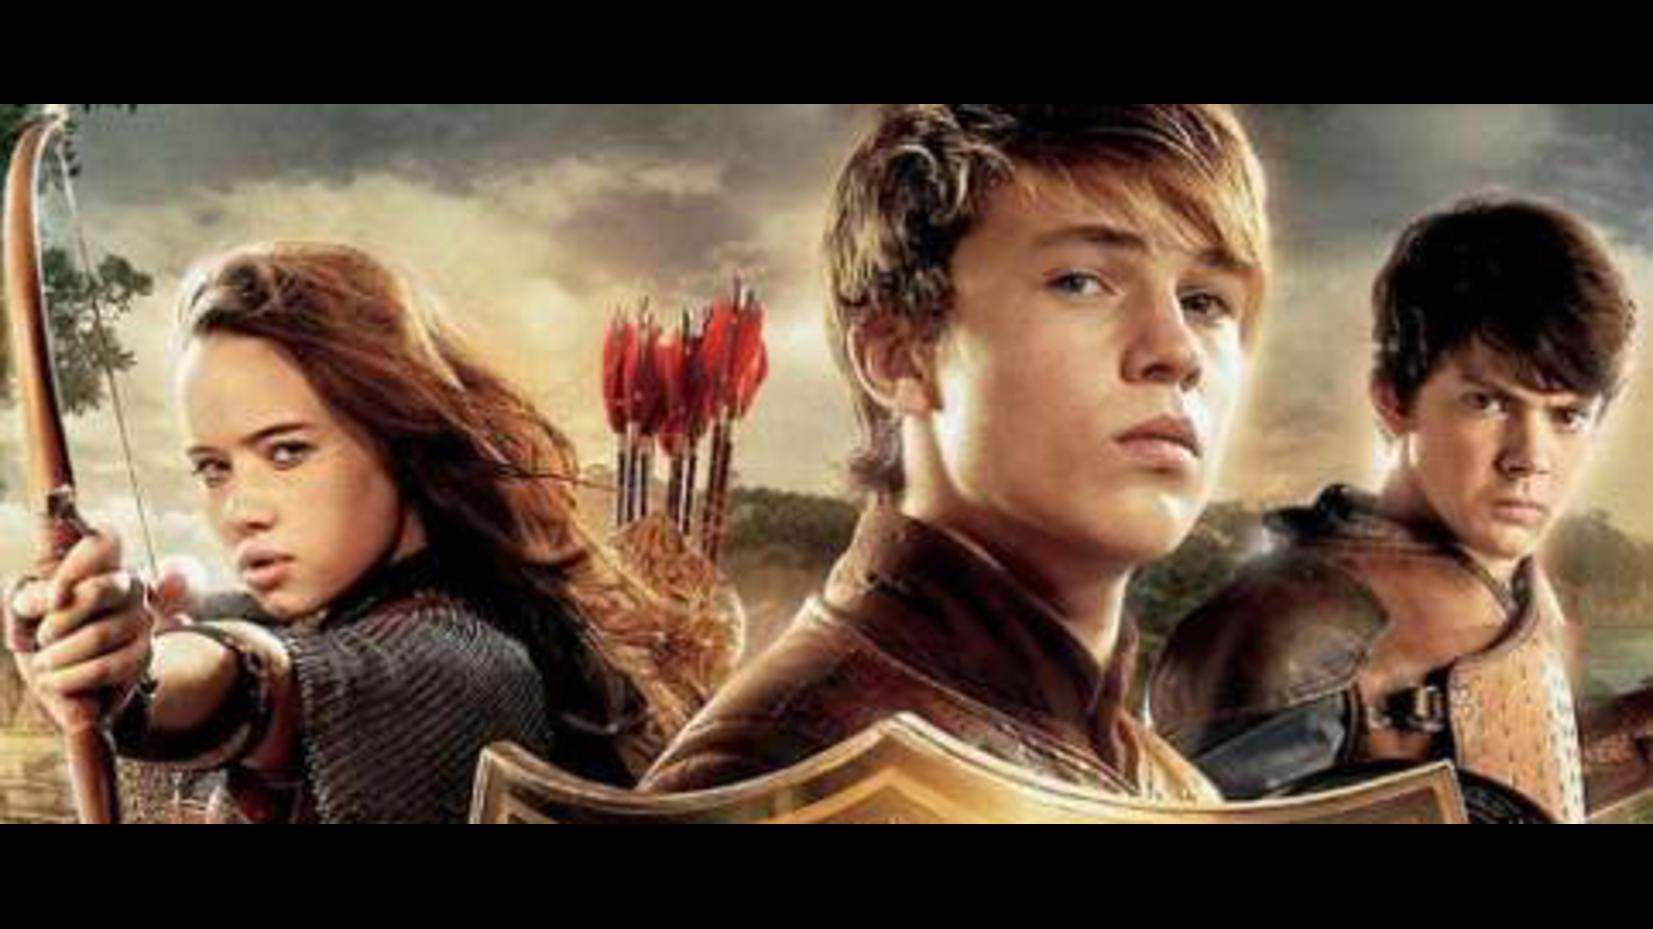 The Chronicles of Narnia The Voyage of the Dawn Treader - Trailer 2